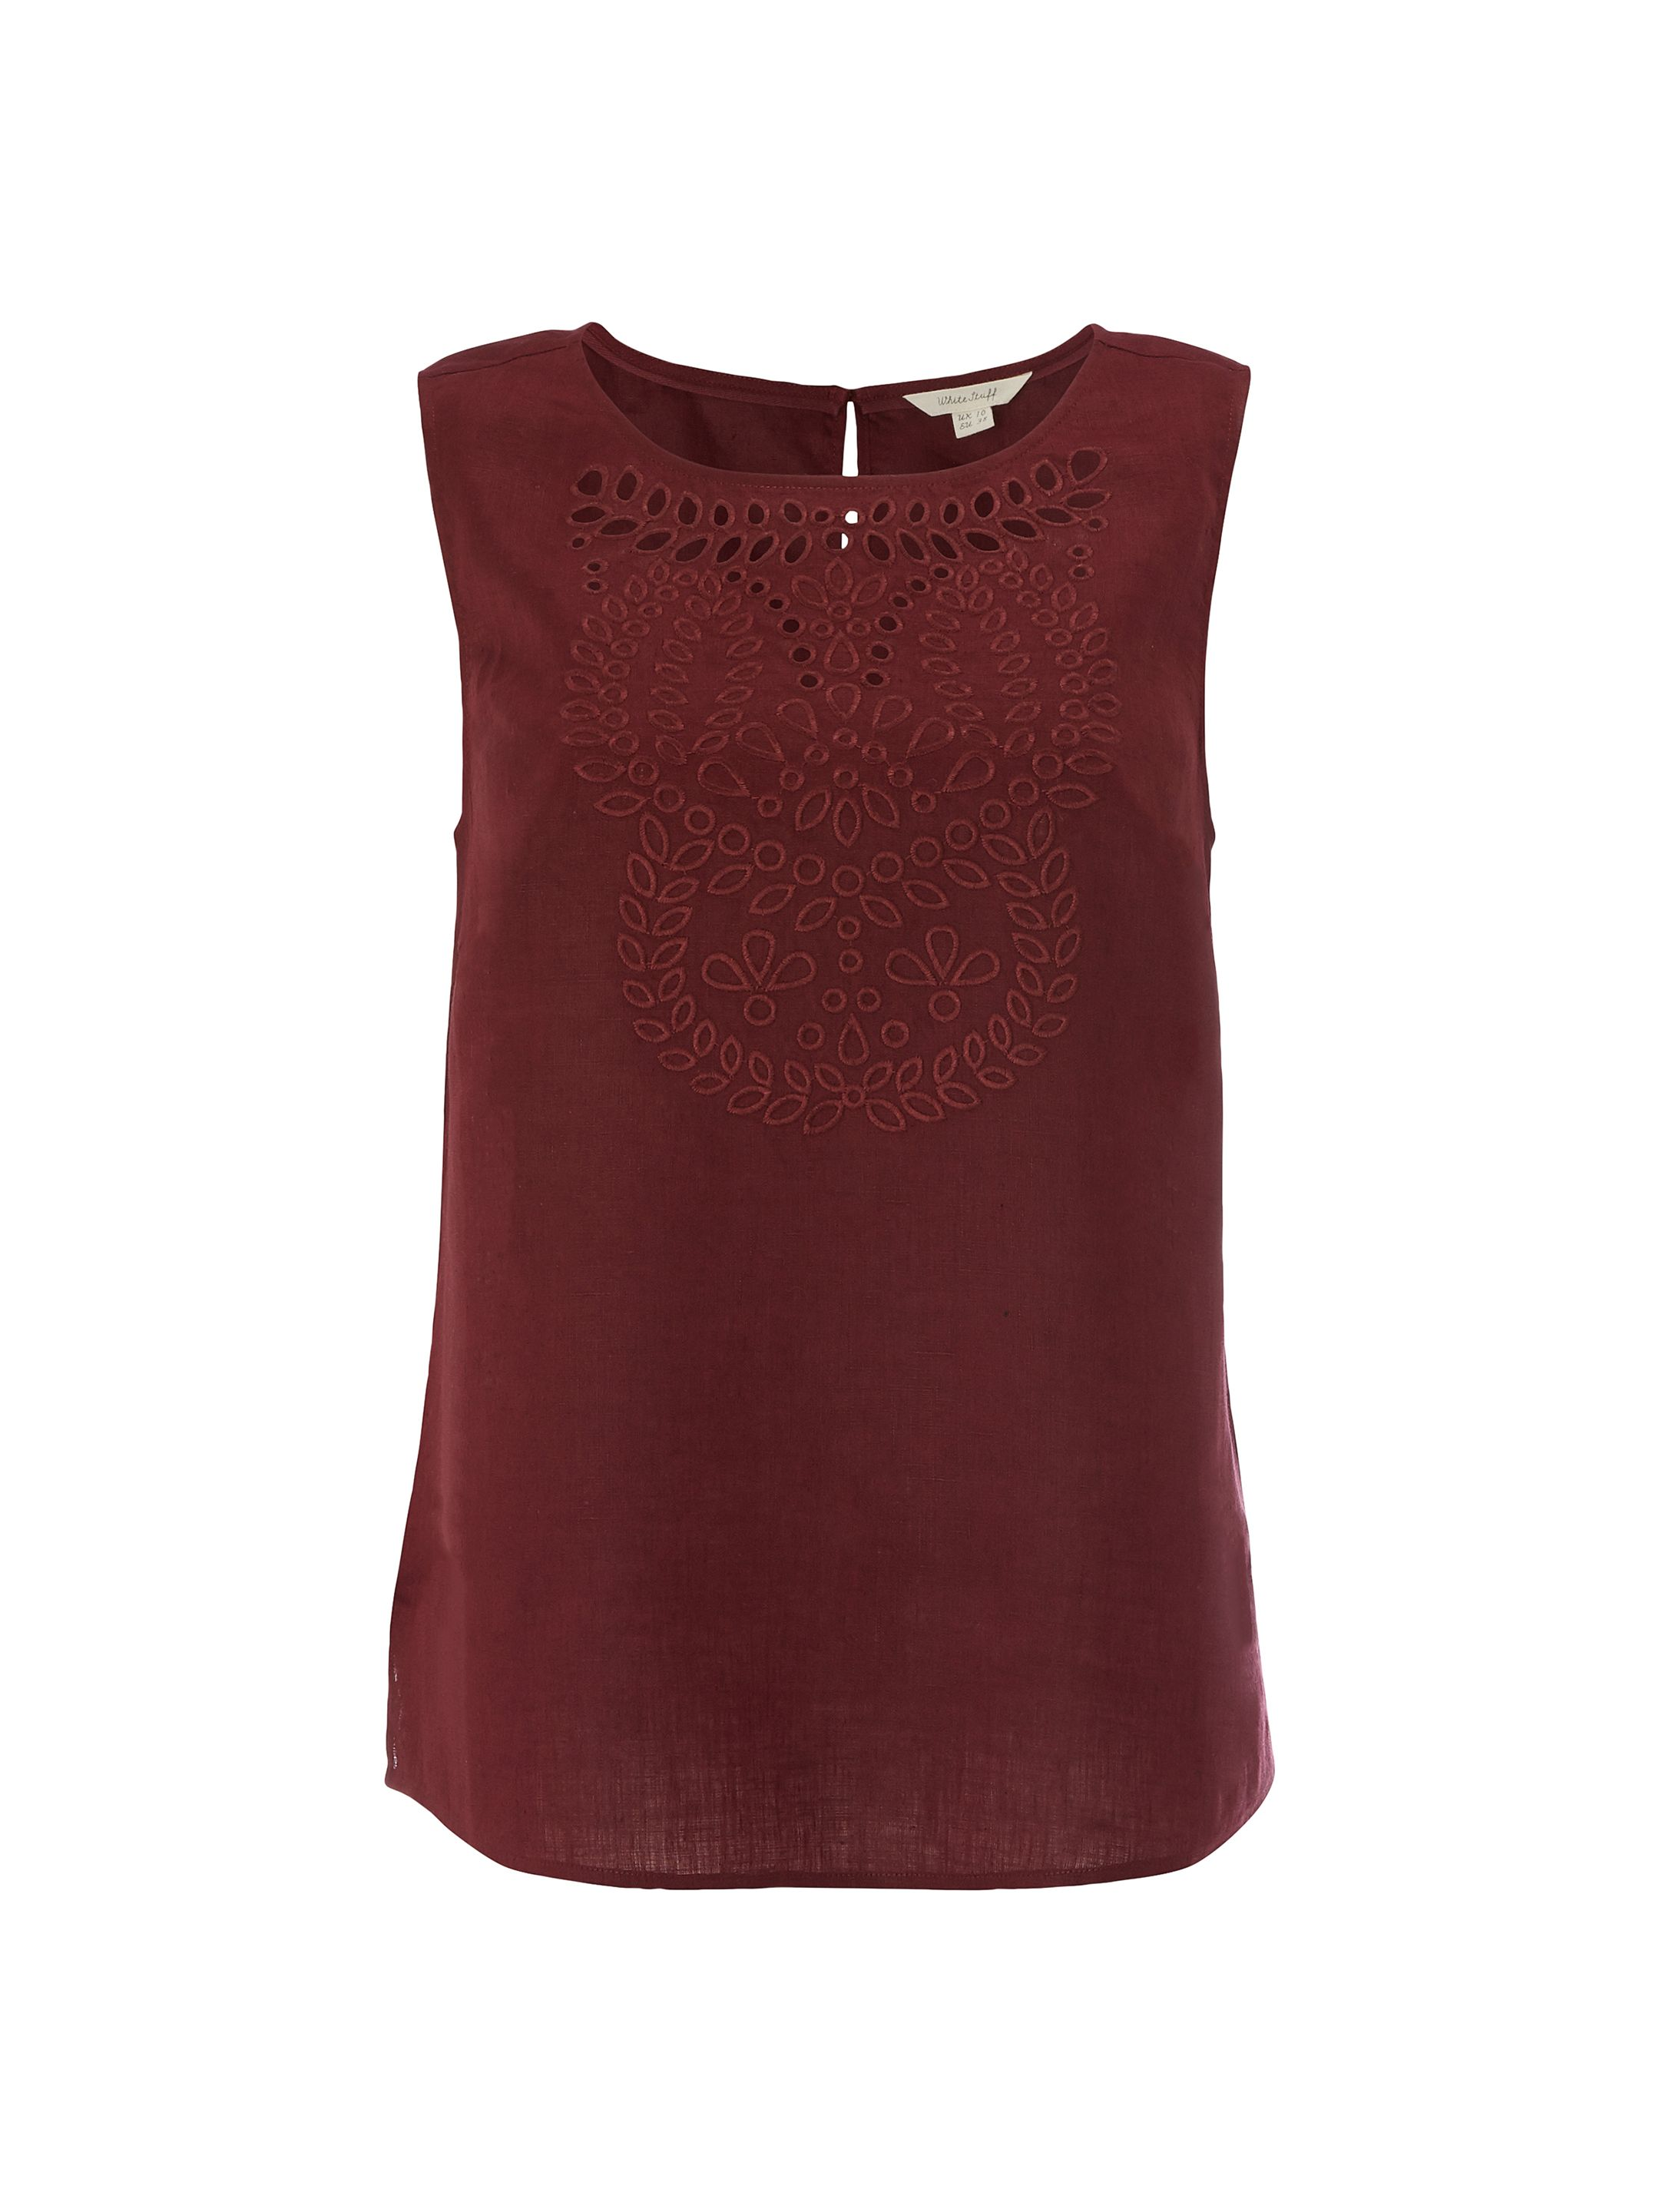 White Stuff Cutwork Karala Vest, Red